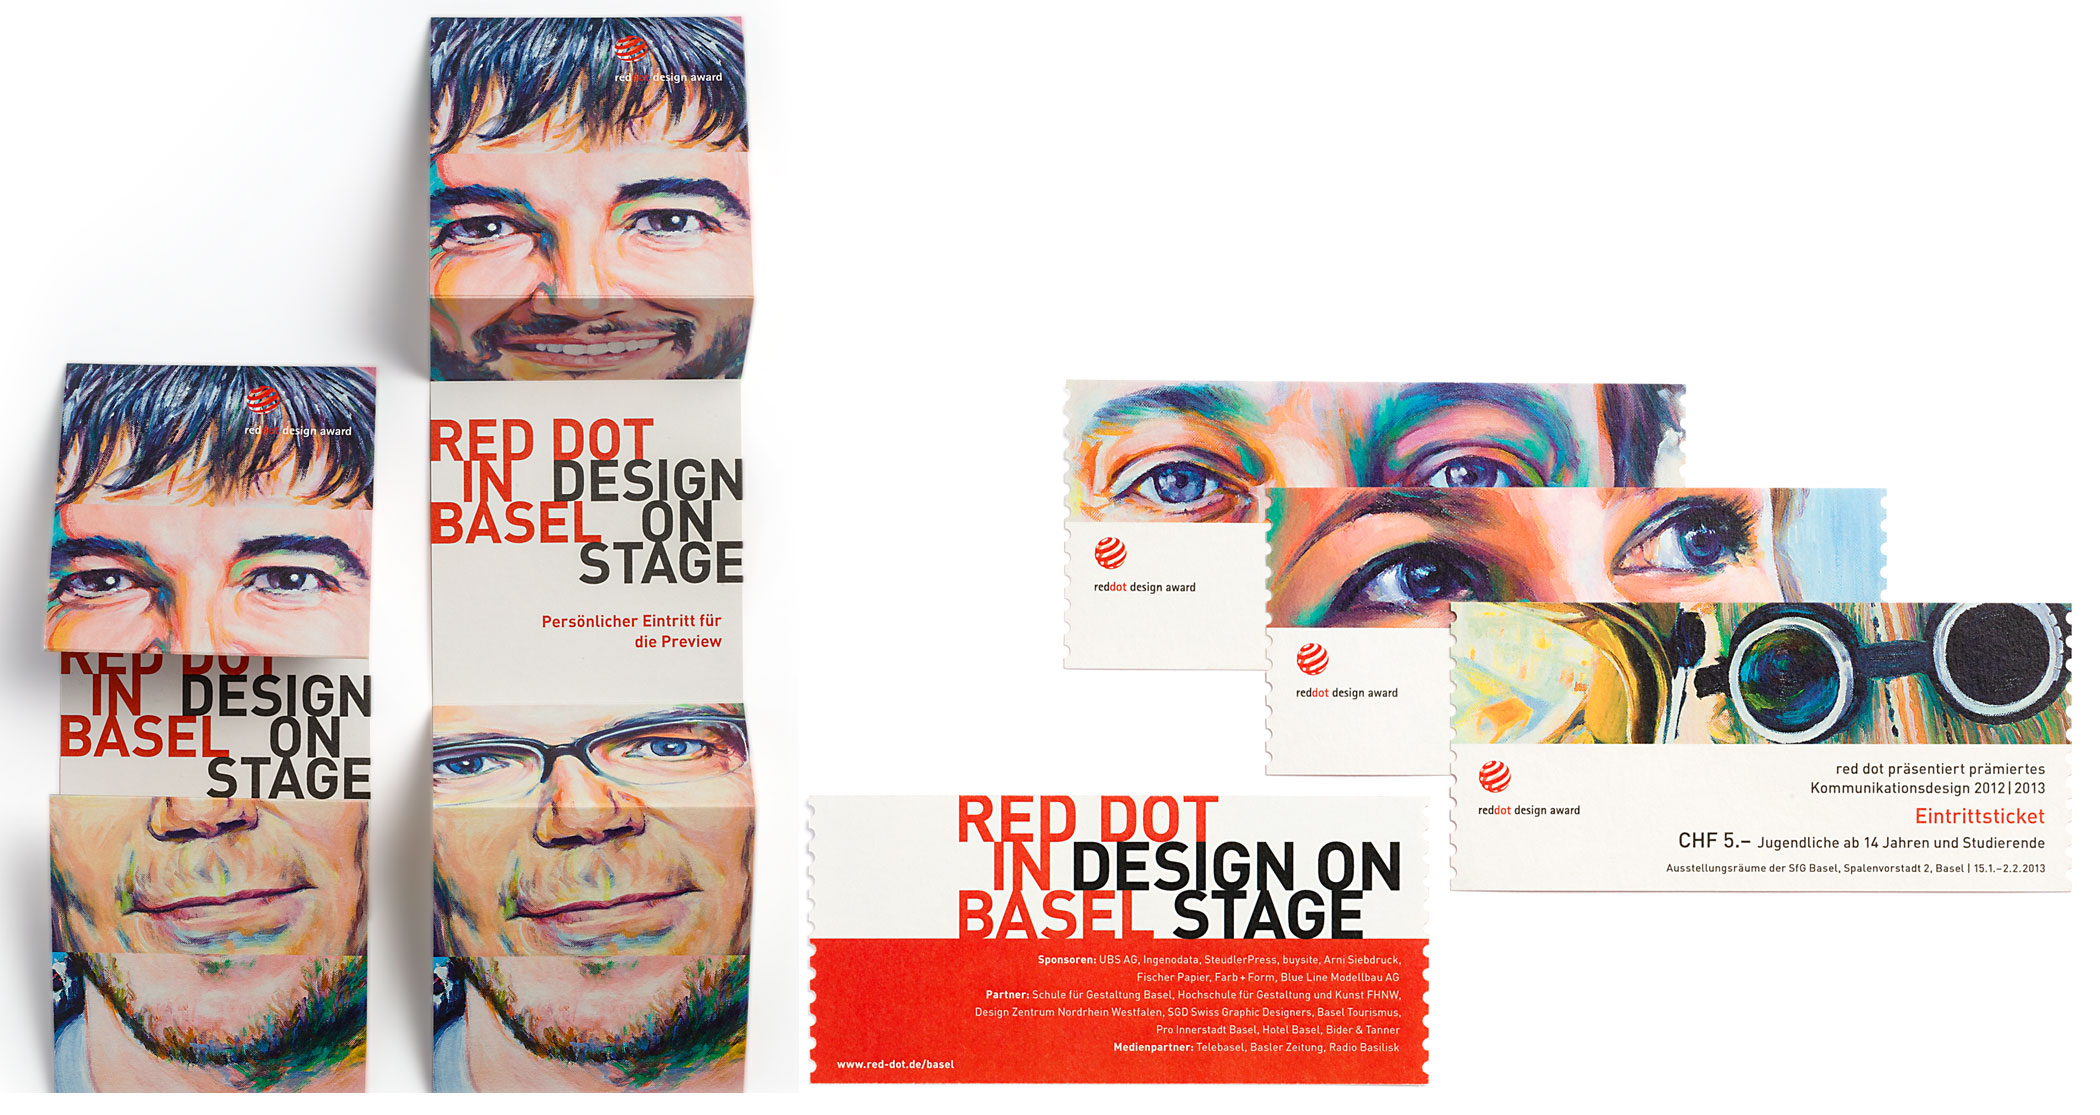 Red Dot Award 2012/2013